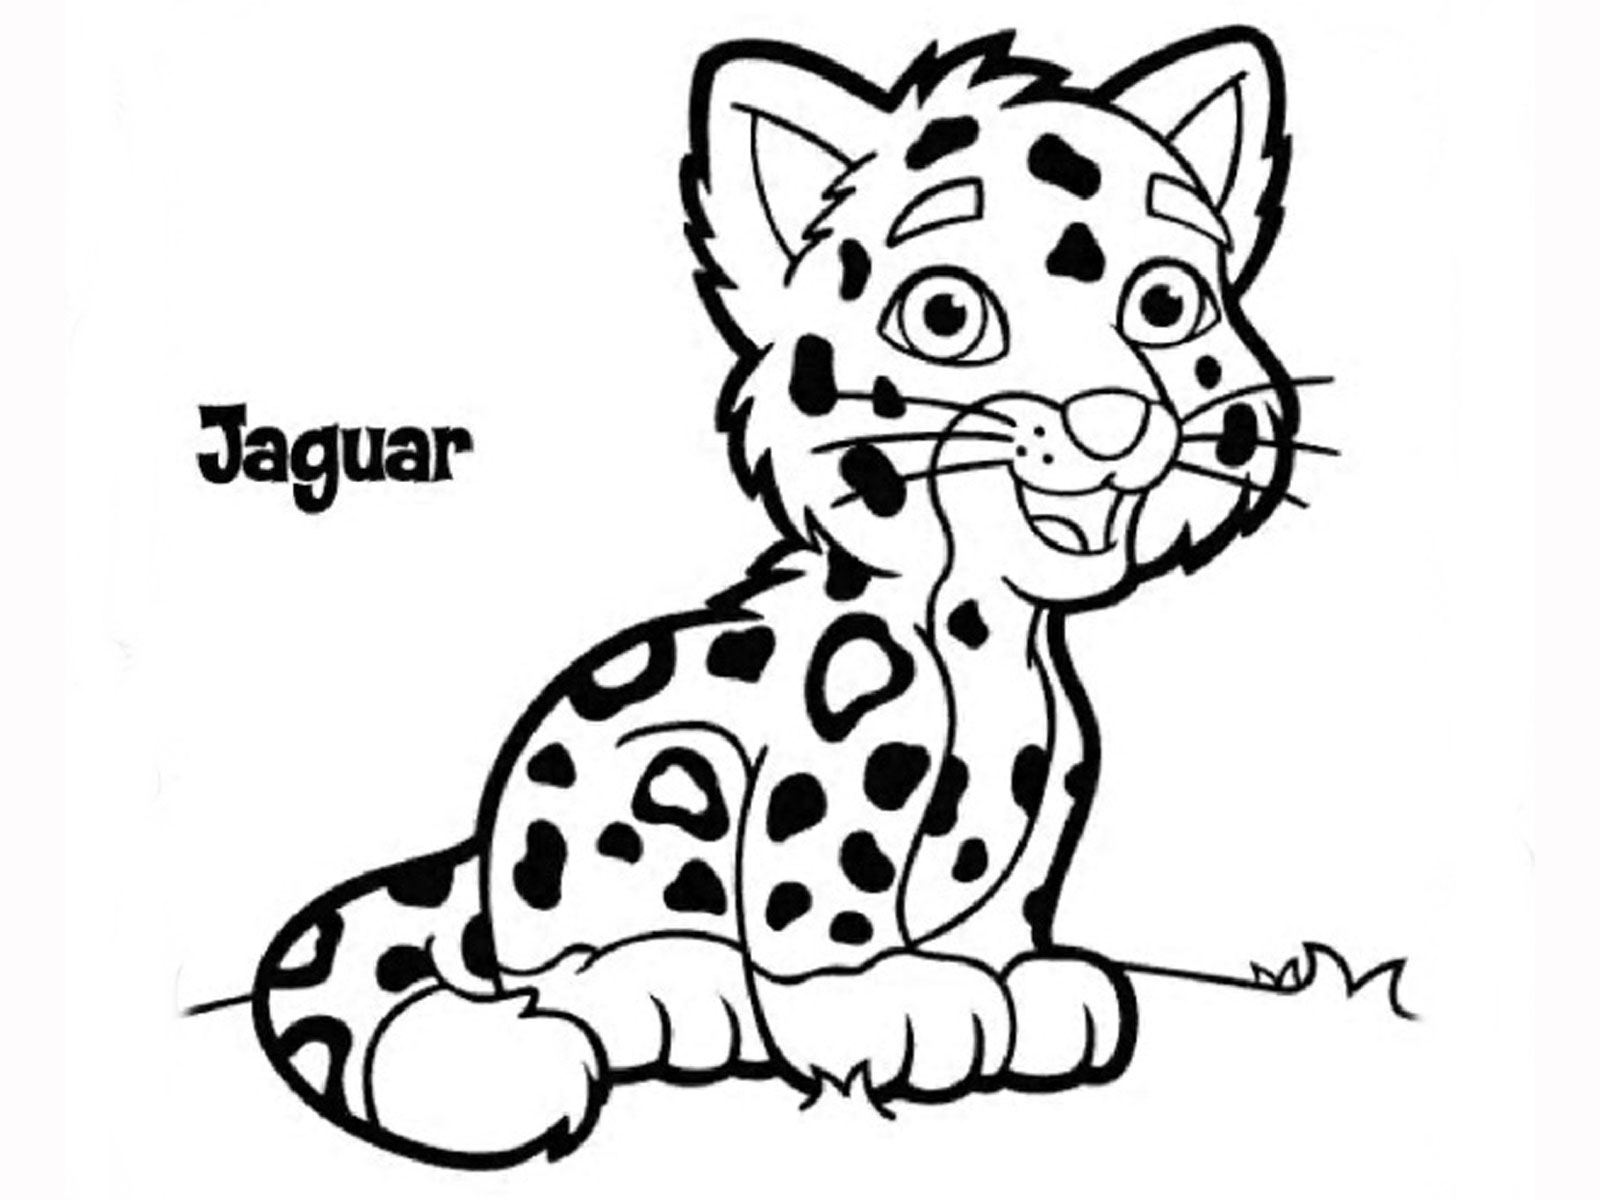 1600x1200 Jaguar Clipart Rainforest Bird